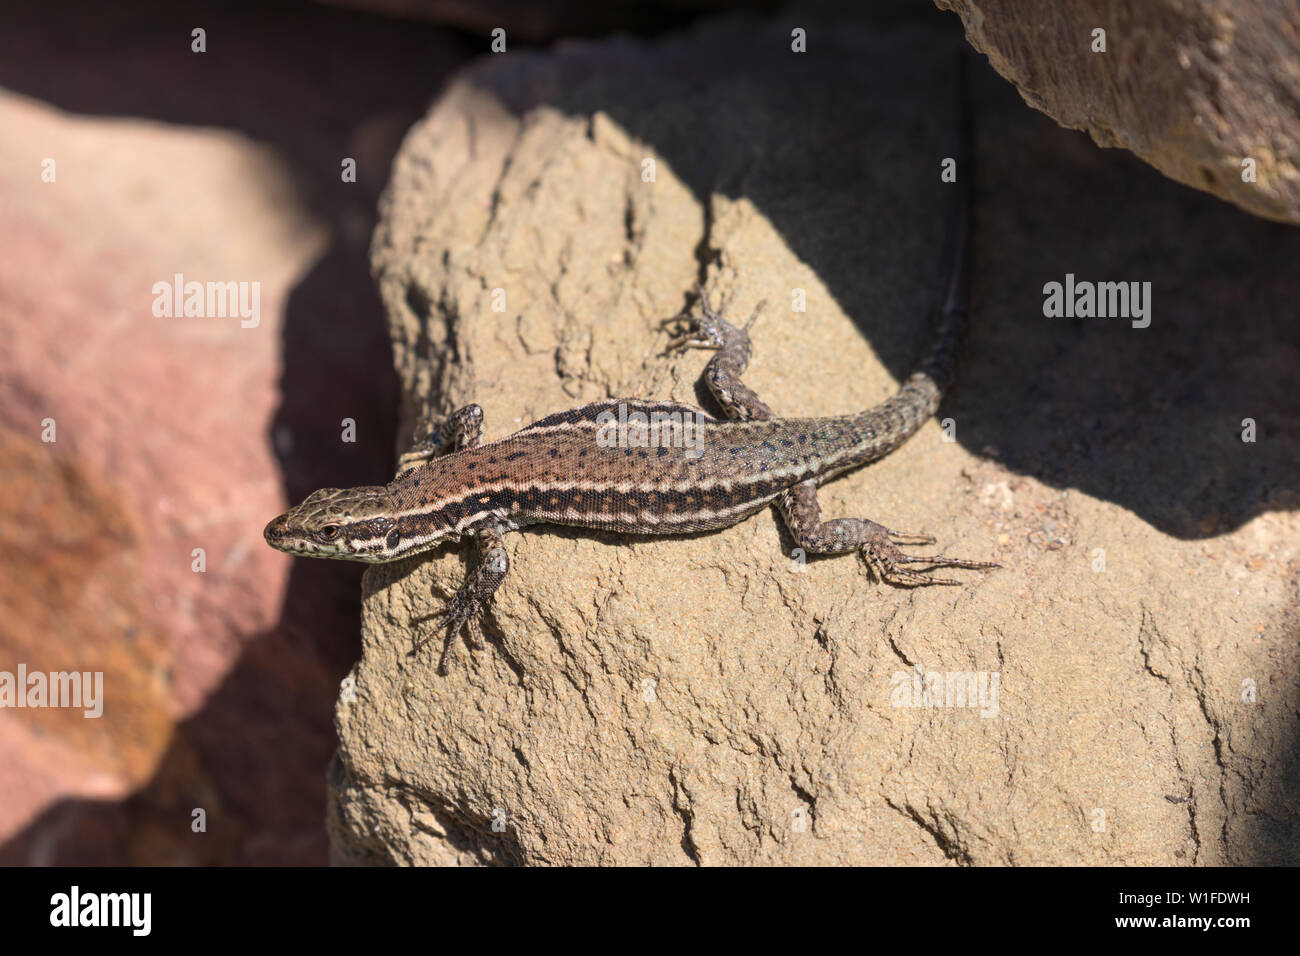 A brown reticulated common wall lizard on a stone wall in the sunshine. Frankfurt am Main. - Stock Image